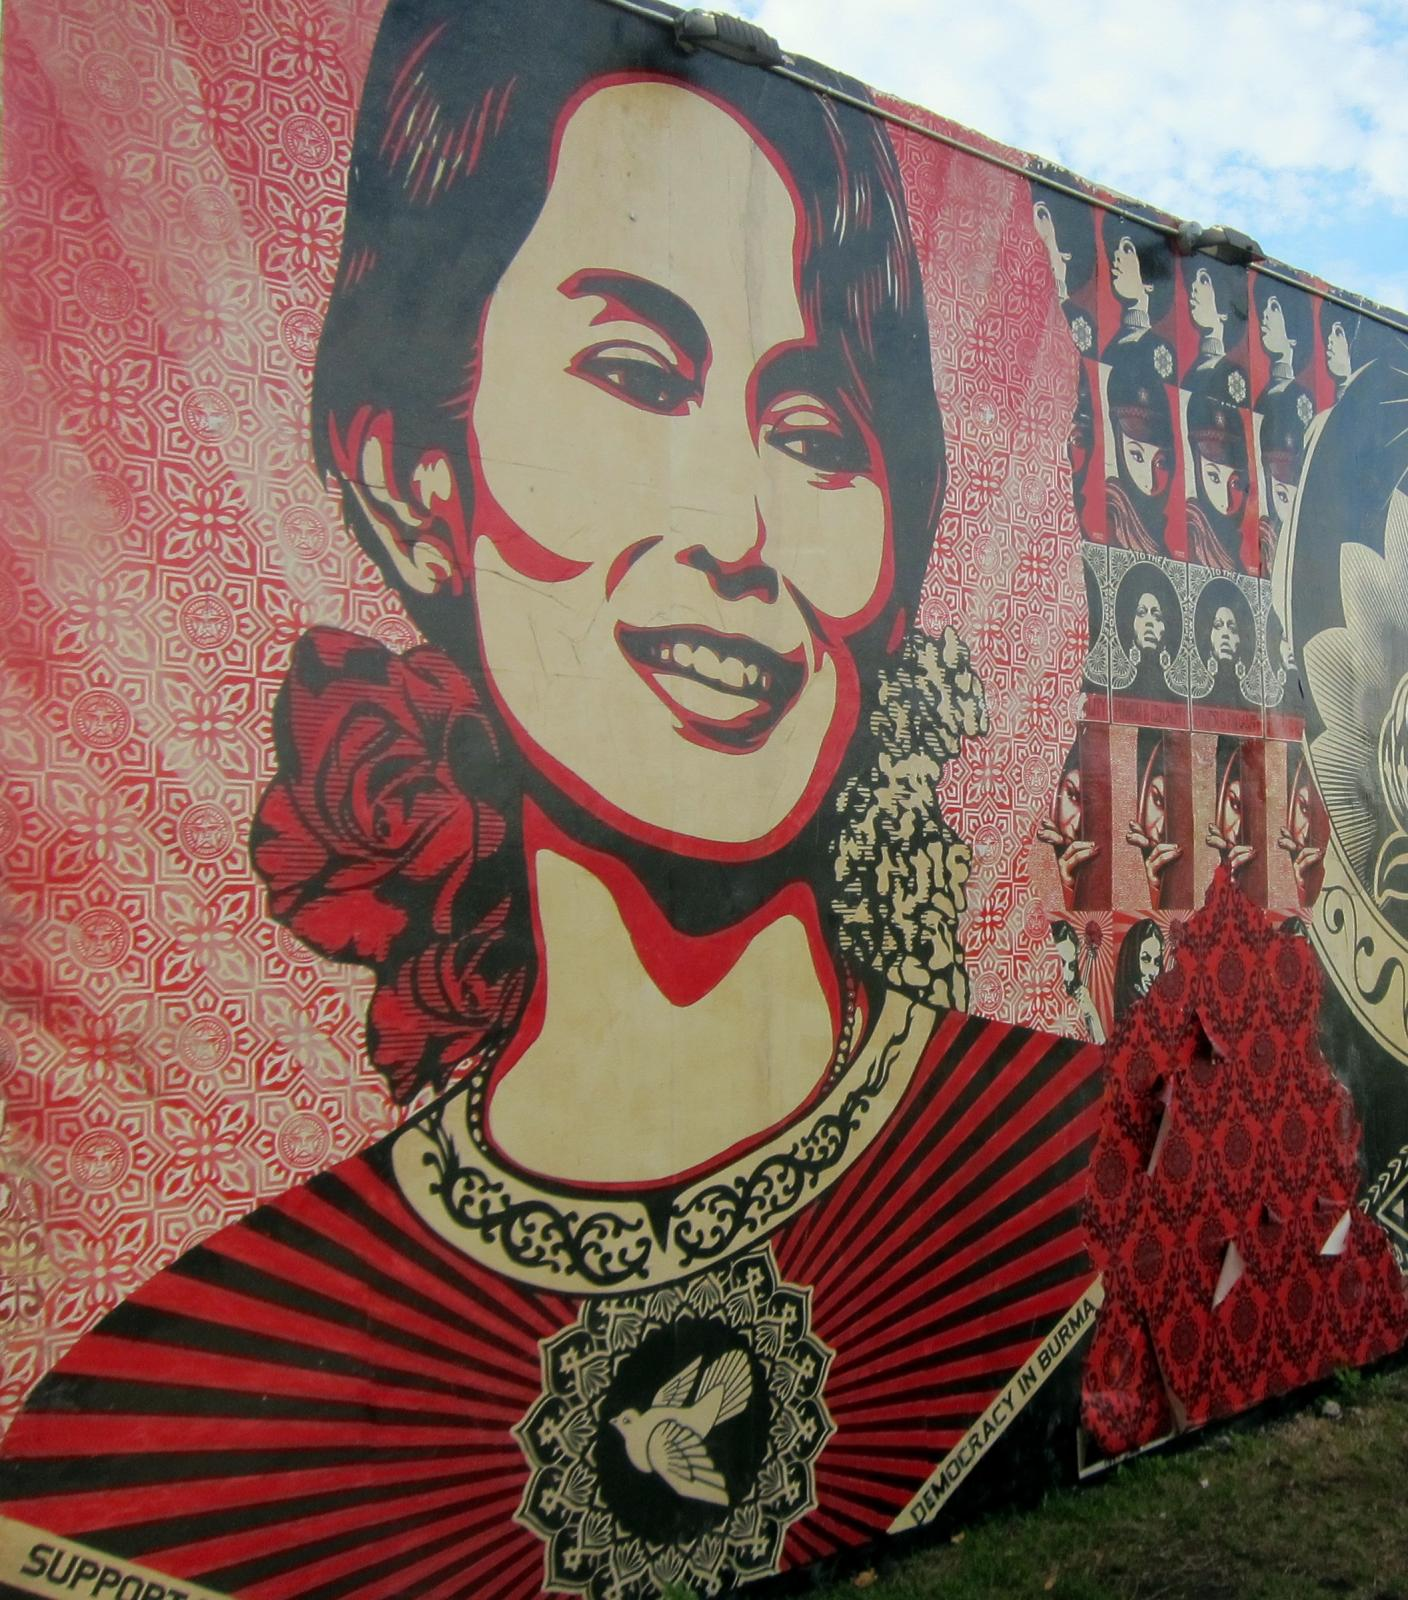 aung san suu kyi leading the burmese democracy movement tavaana nearly two full decades spent under house arrest have not deterred suu kyi from her path towards a democratic burma following her release in 2010